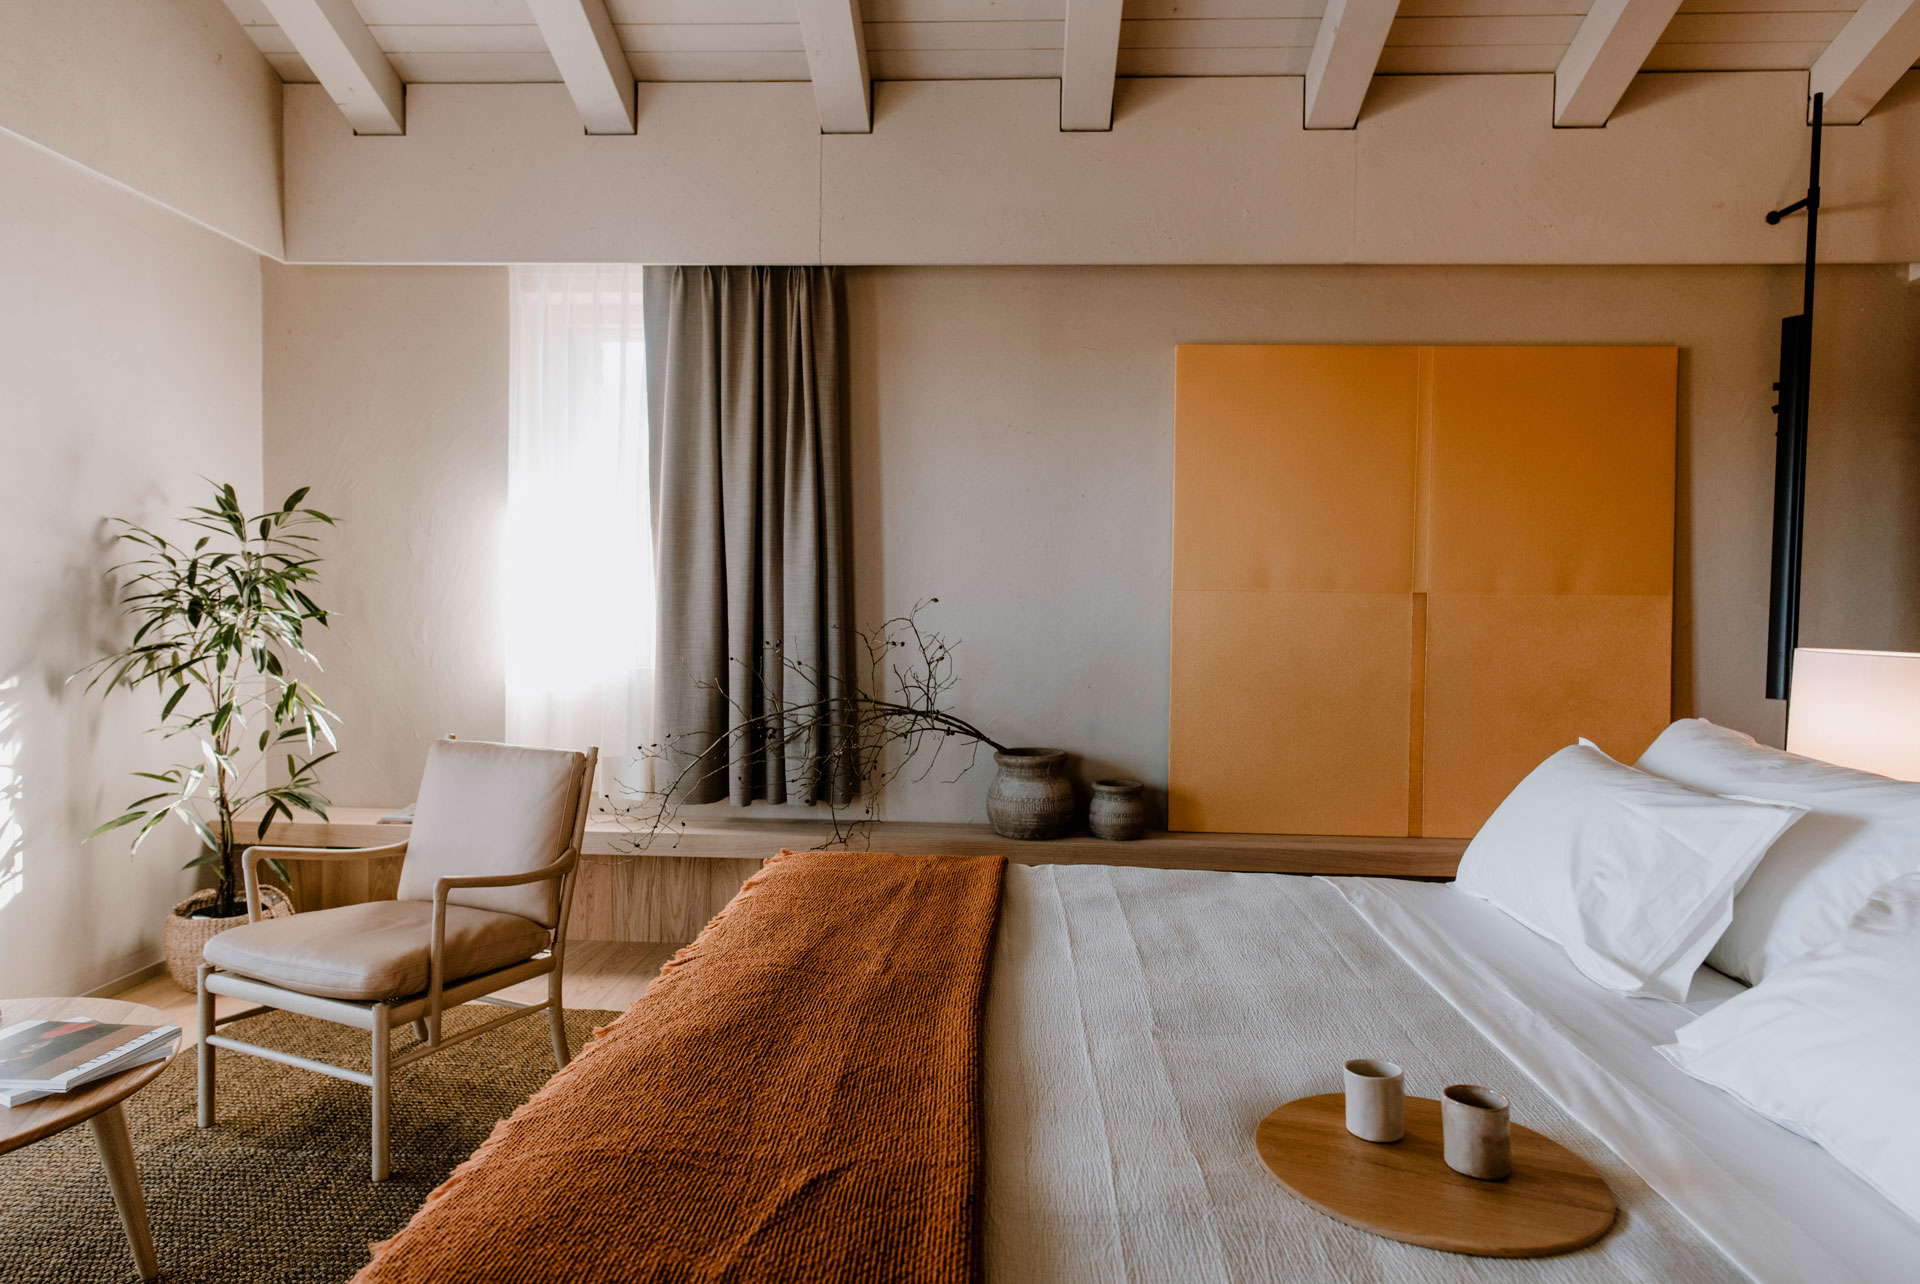 Casa Di Langa, A Sustainable Boutique Hotel, To Debut in Piedmont in Spring 2021